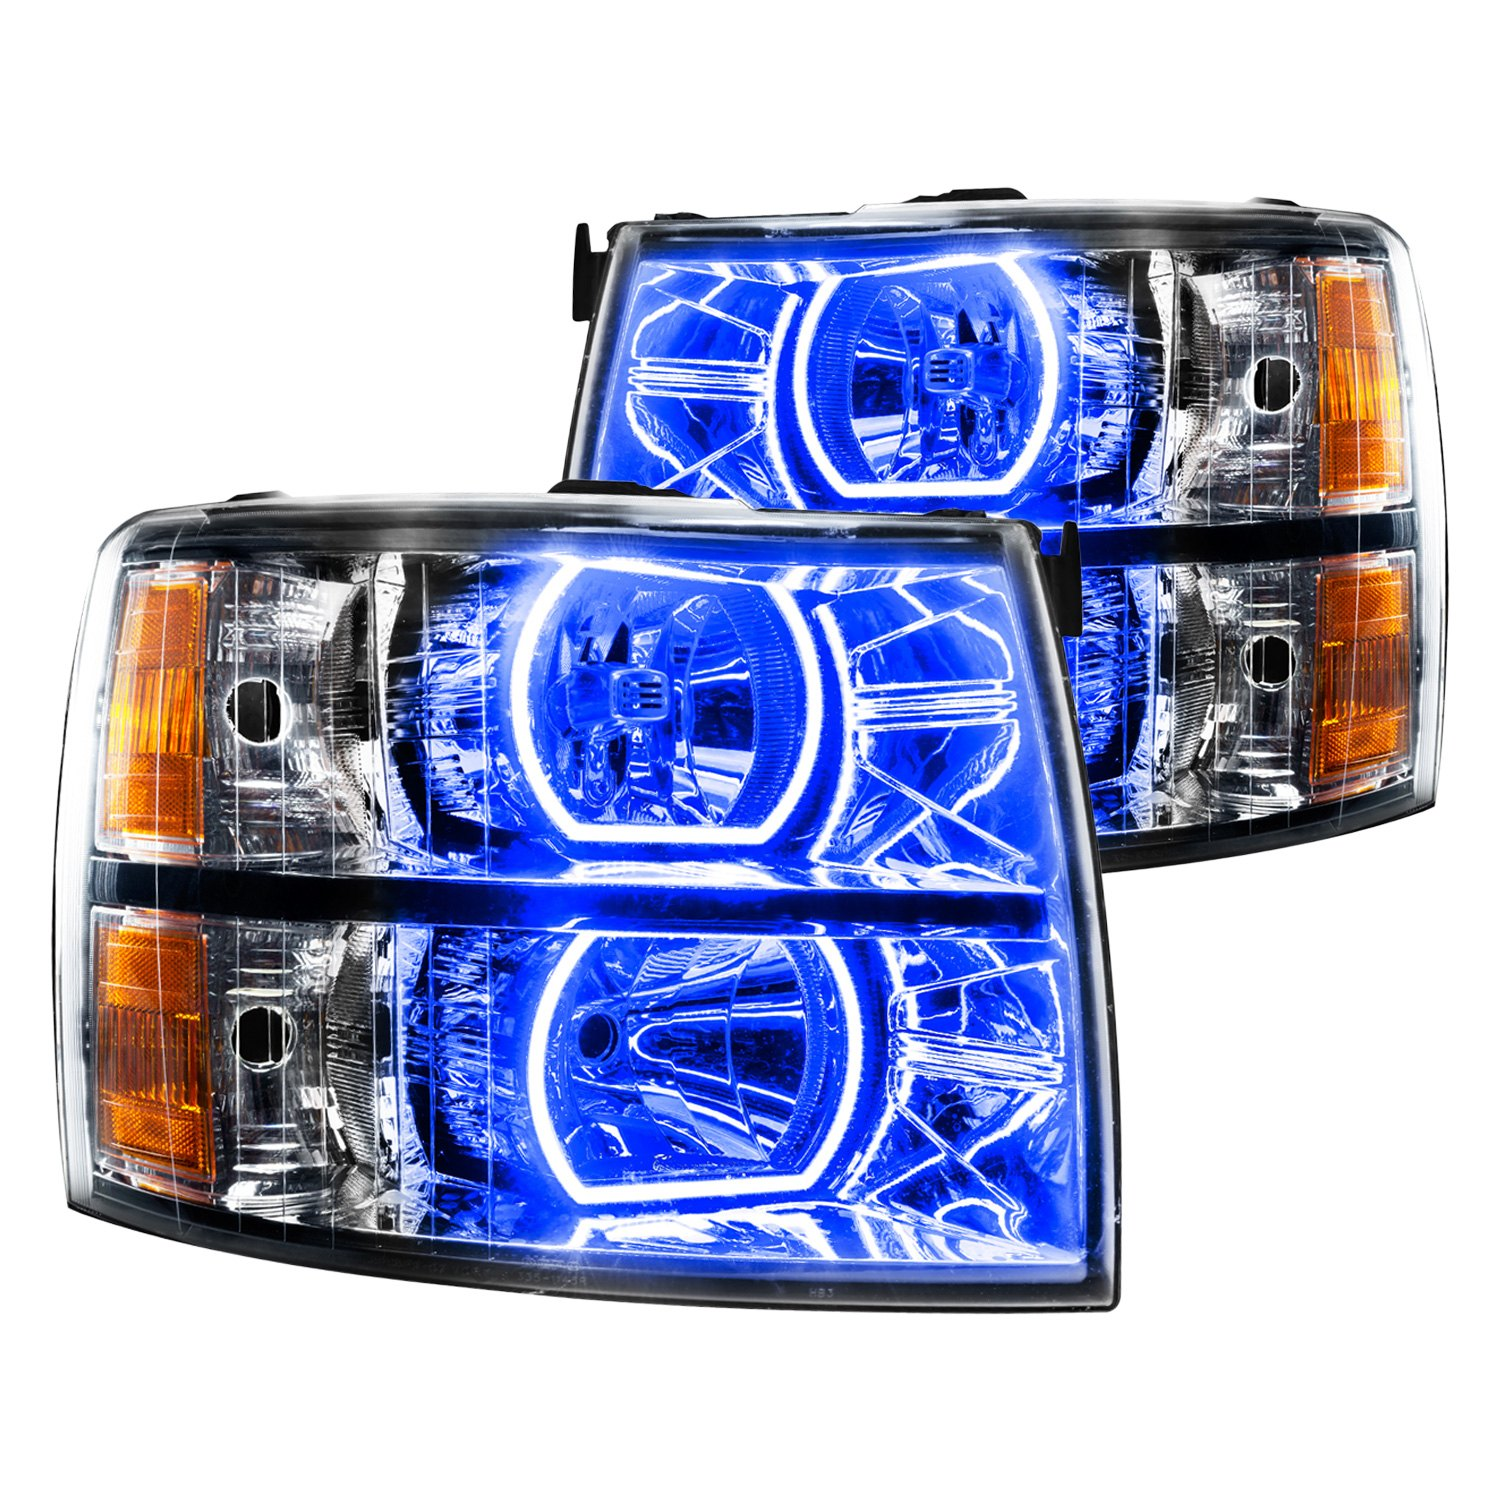 Oracle Lighting Chrome Factory Style Headlights With Blue Plasma Led Square Ring Halos Preinstalled